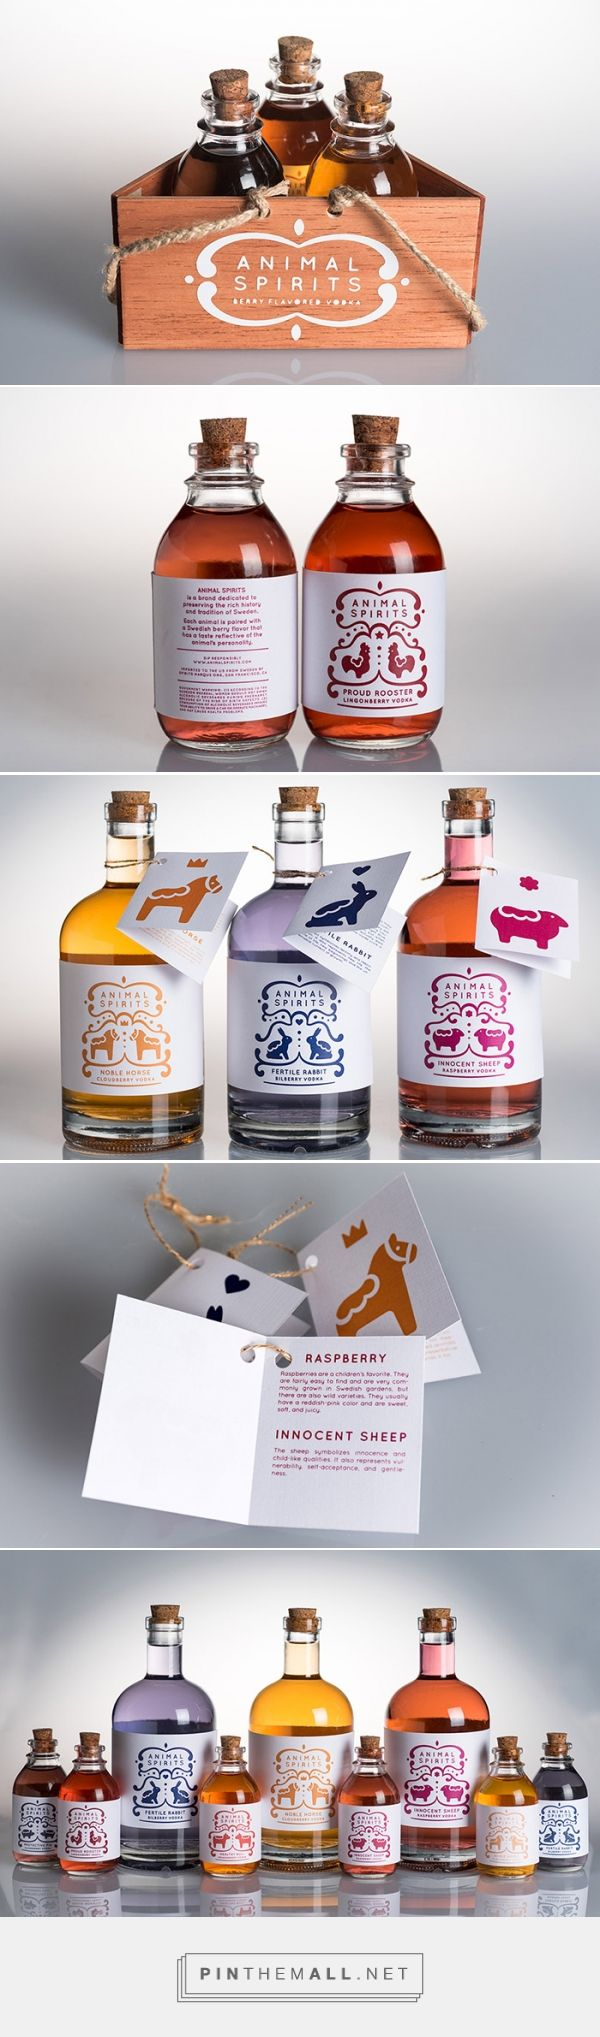 Animal Spirits Vodka - Daily Package Design InspirationDaily Package Design Inspiration | - created via https://pinthemall.net